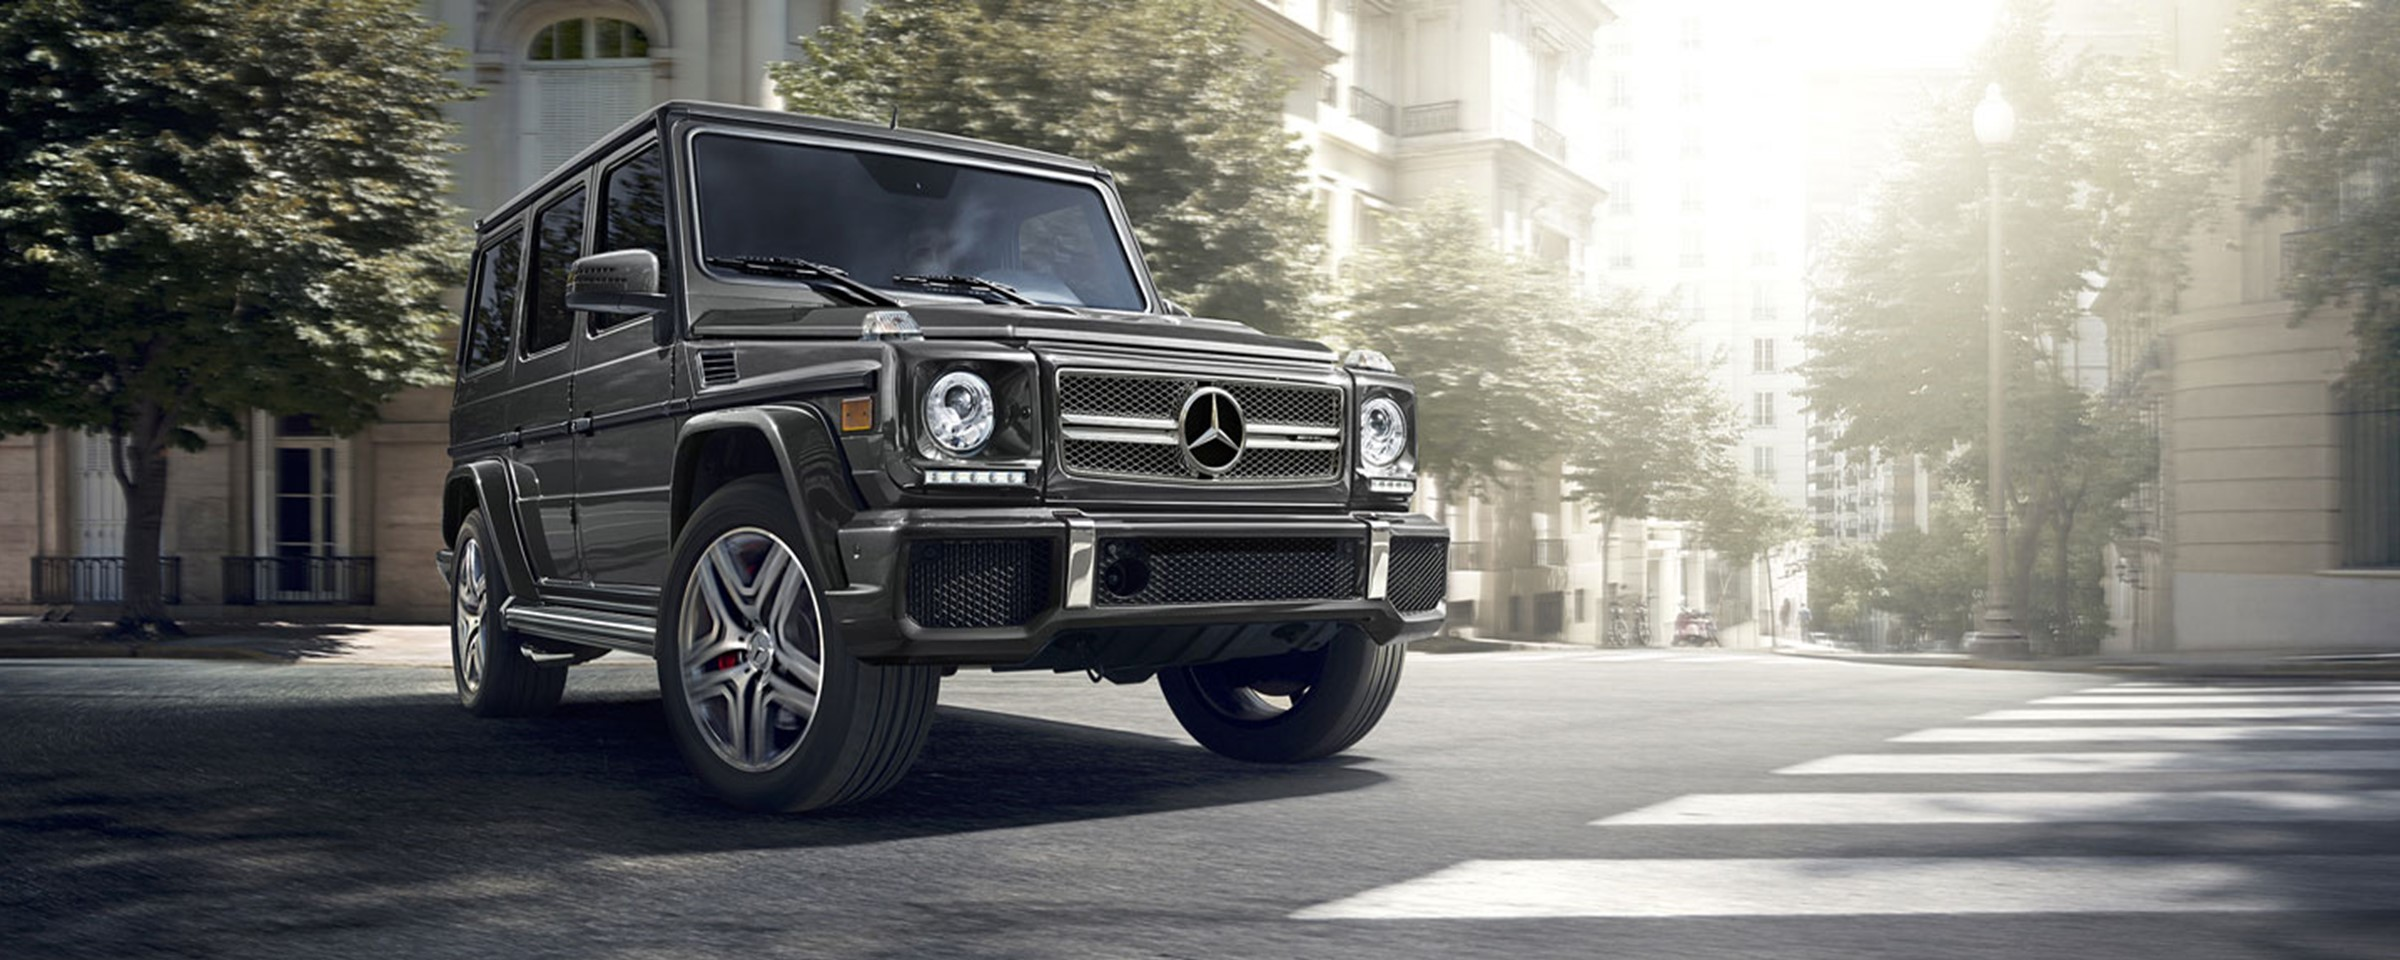 learning the difference: mercedes-benz's g-class models - baker